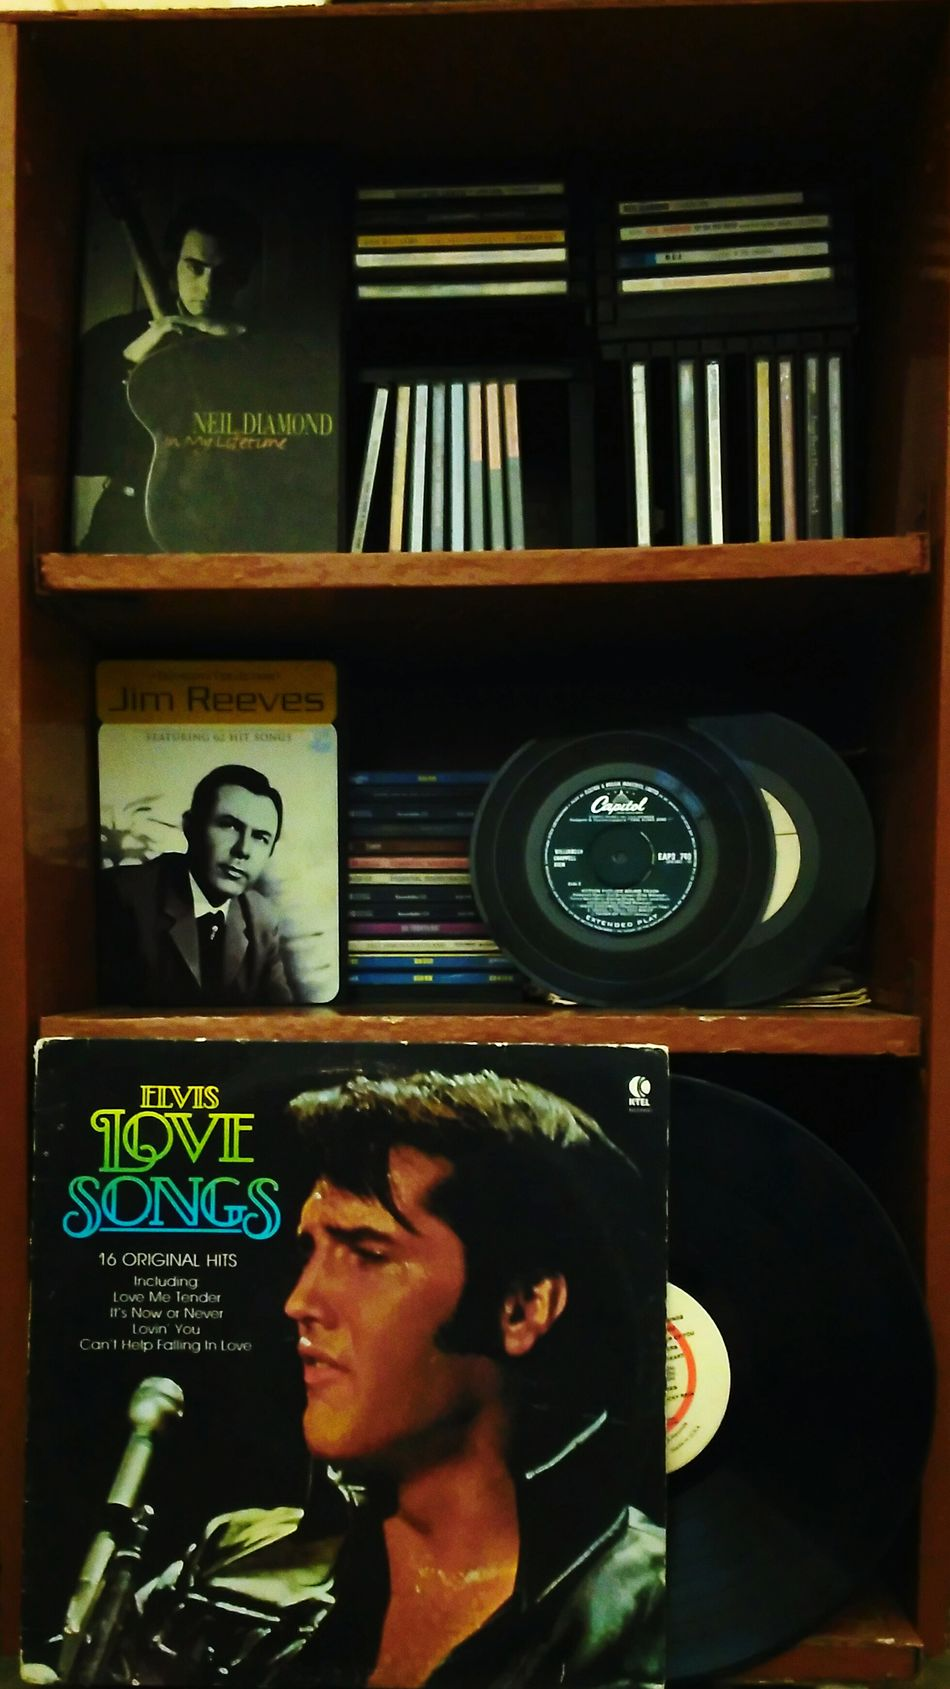 Song Shelf Elvis Neil Diamond Jim Reeves Old Friends Soul Music TakeoverMusic